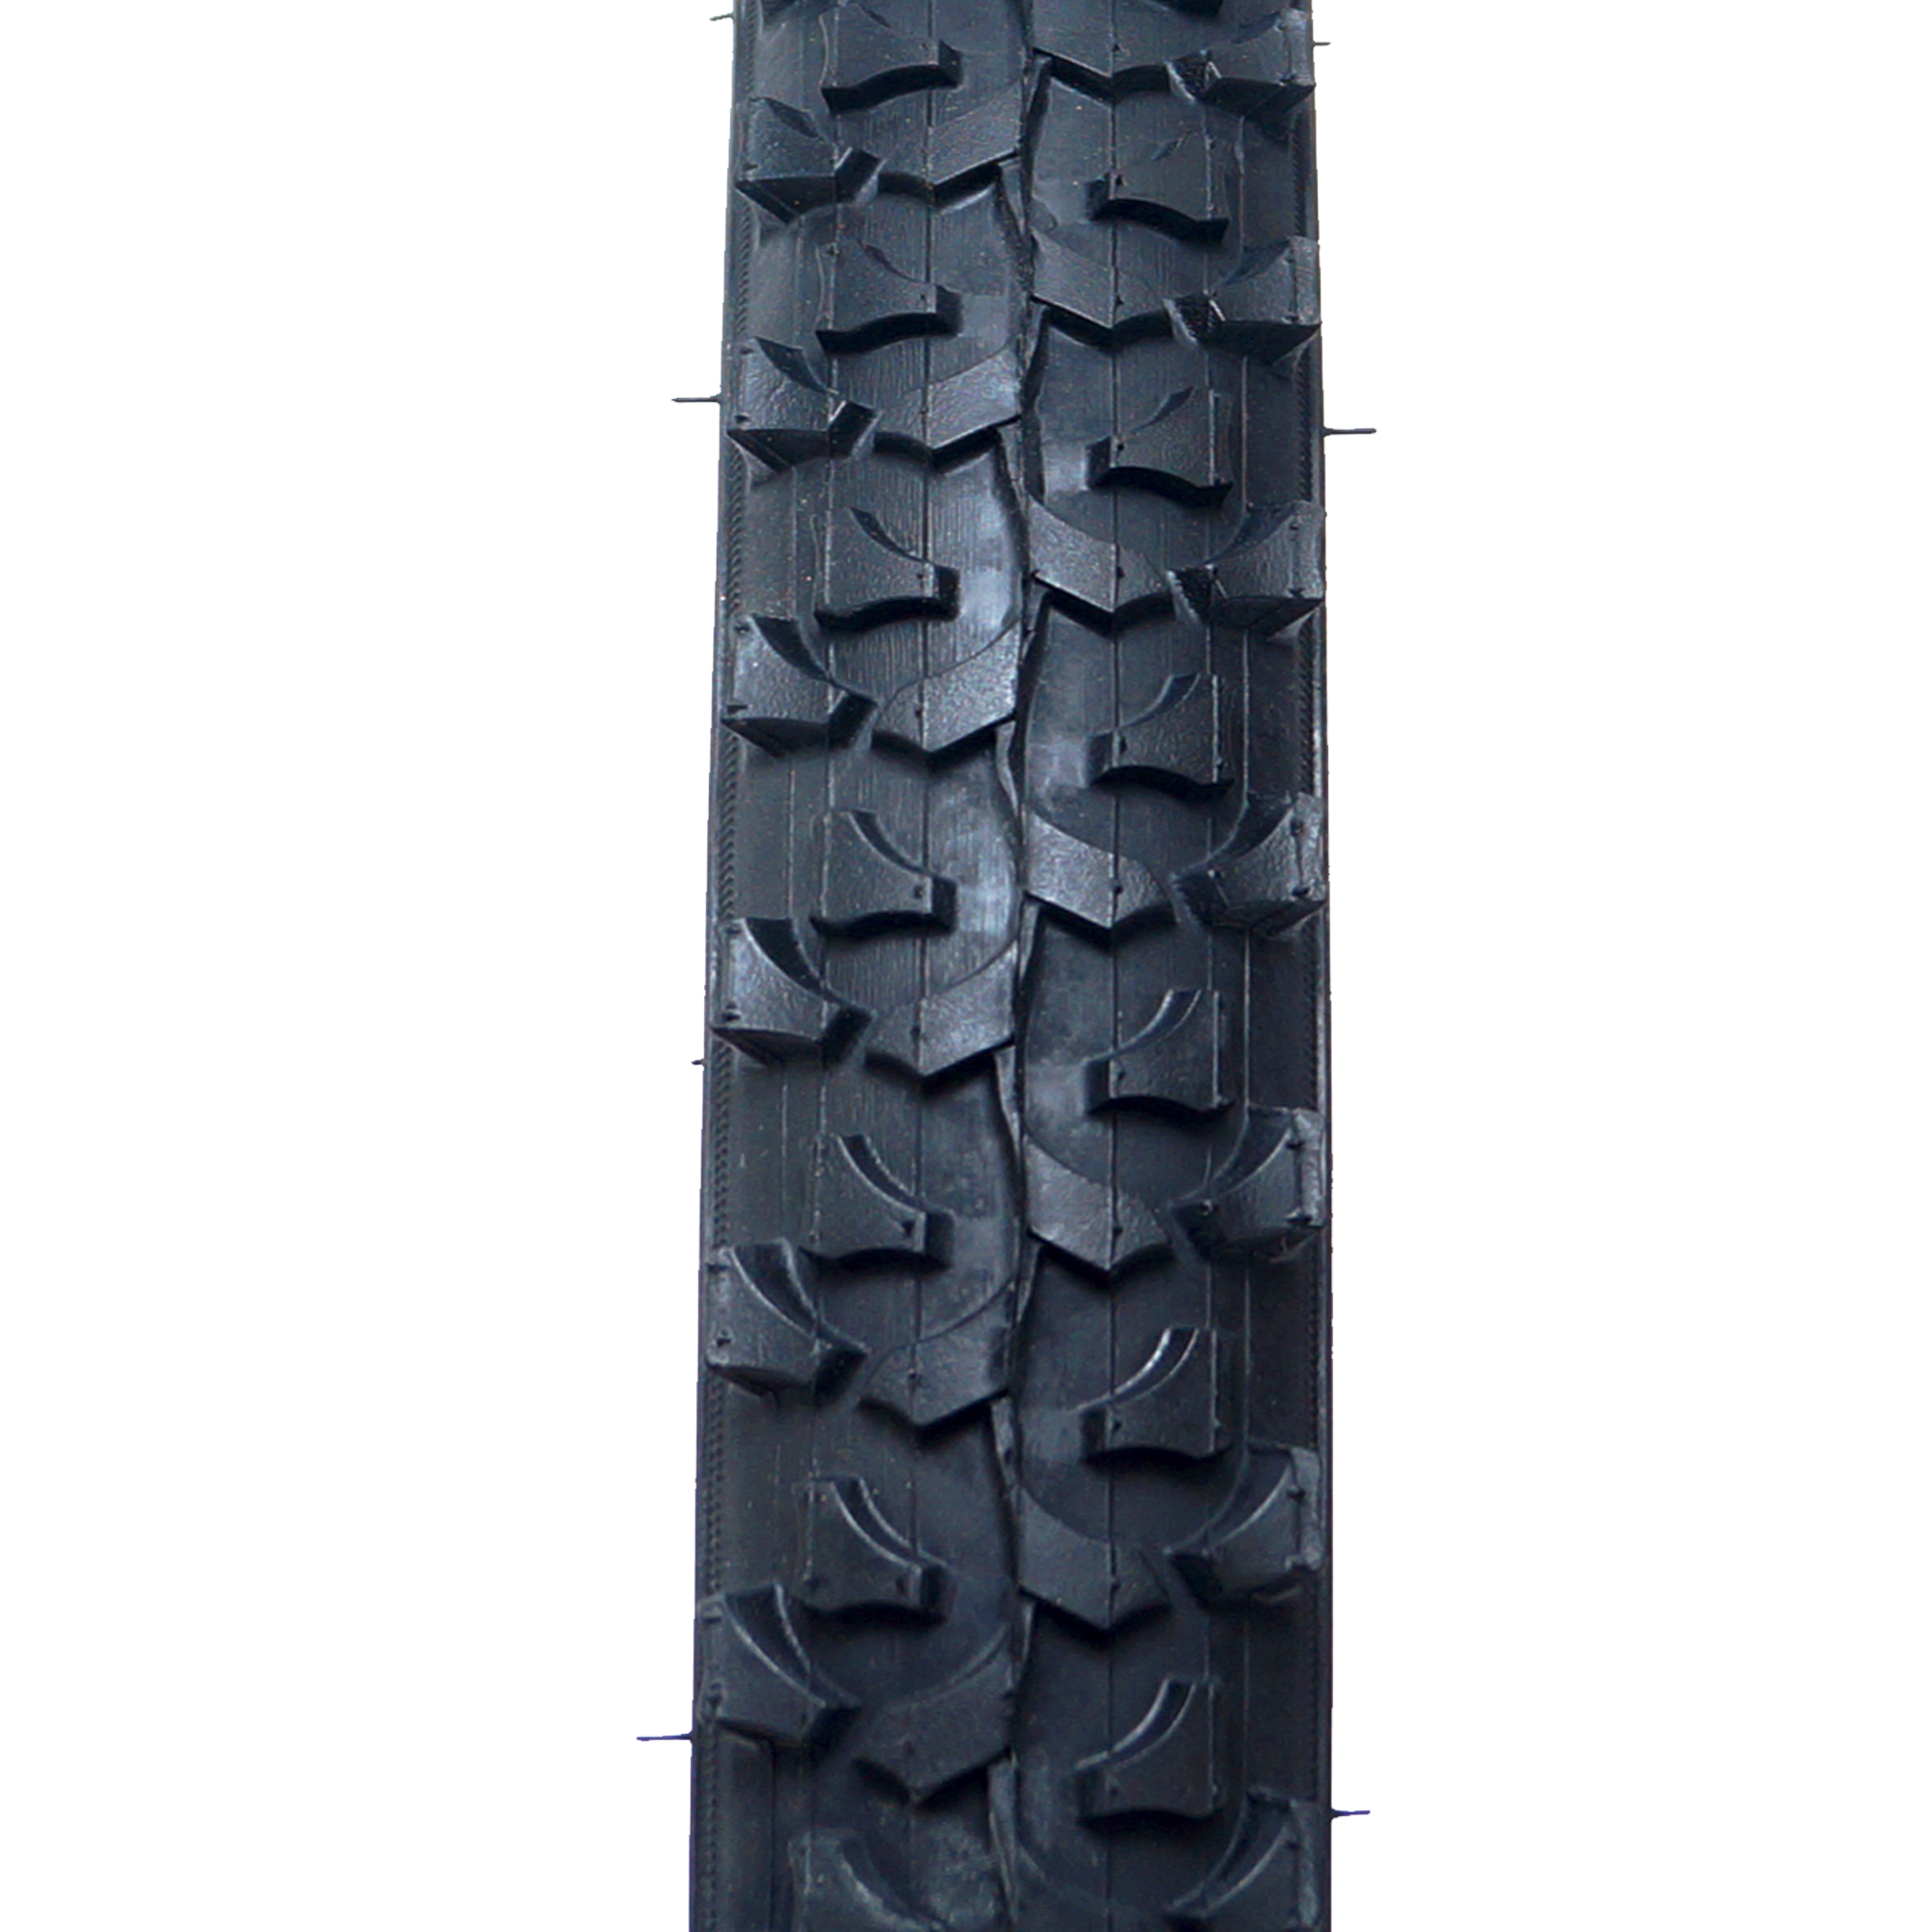 Fincci 20 x 1.75 Inch 47 406 Tyre for